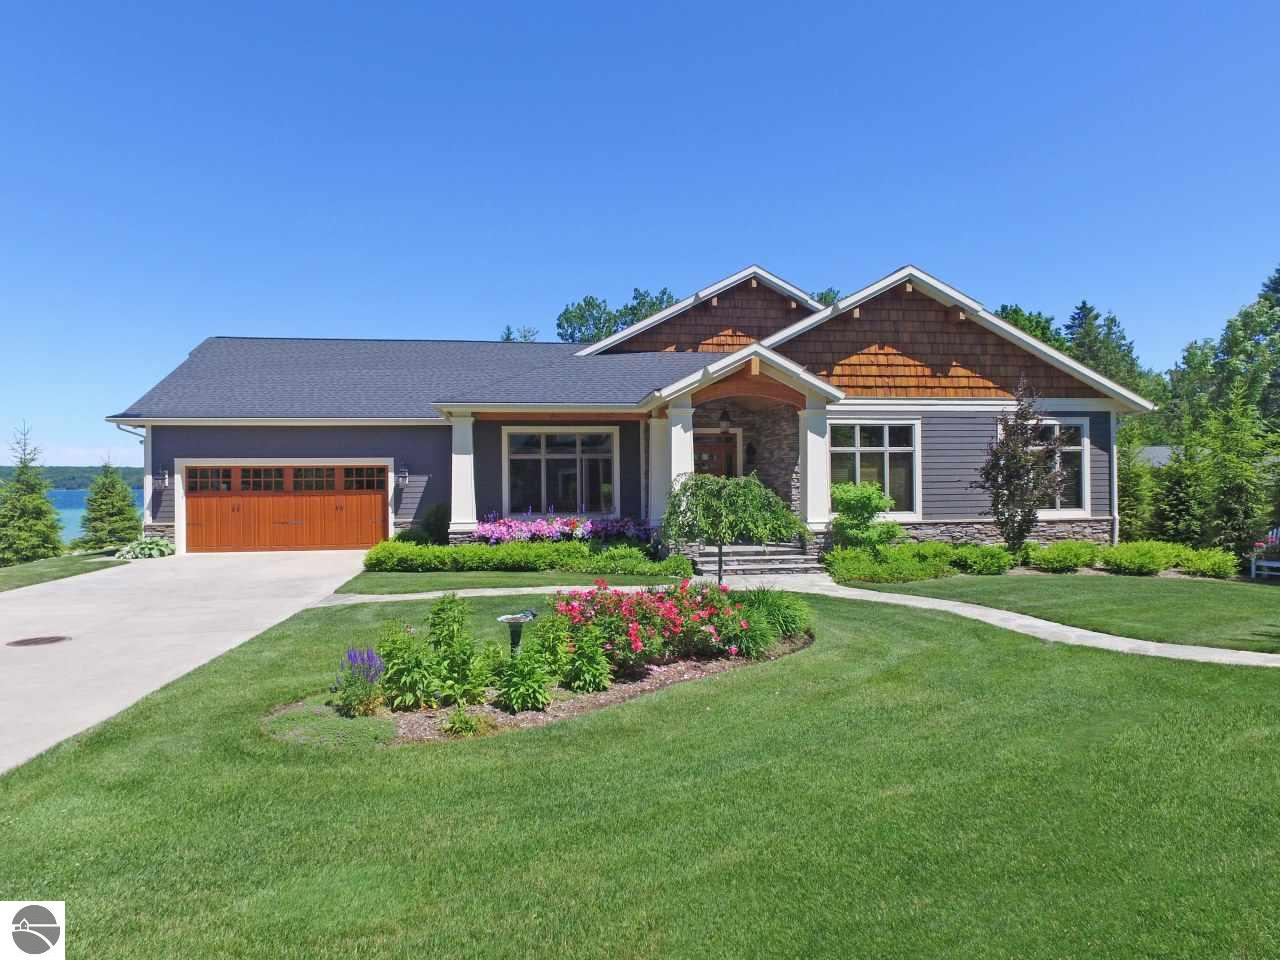 4 Bedroom Waterfront Homes For Sale On Torch Lake In North Michigan